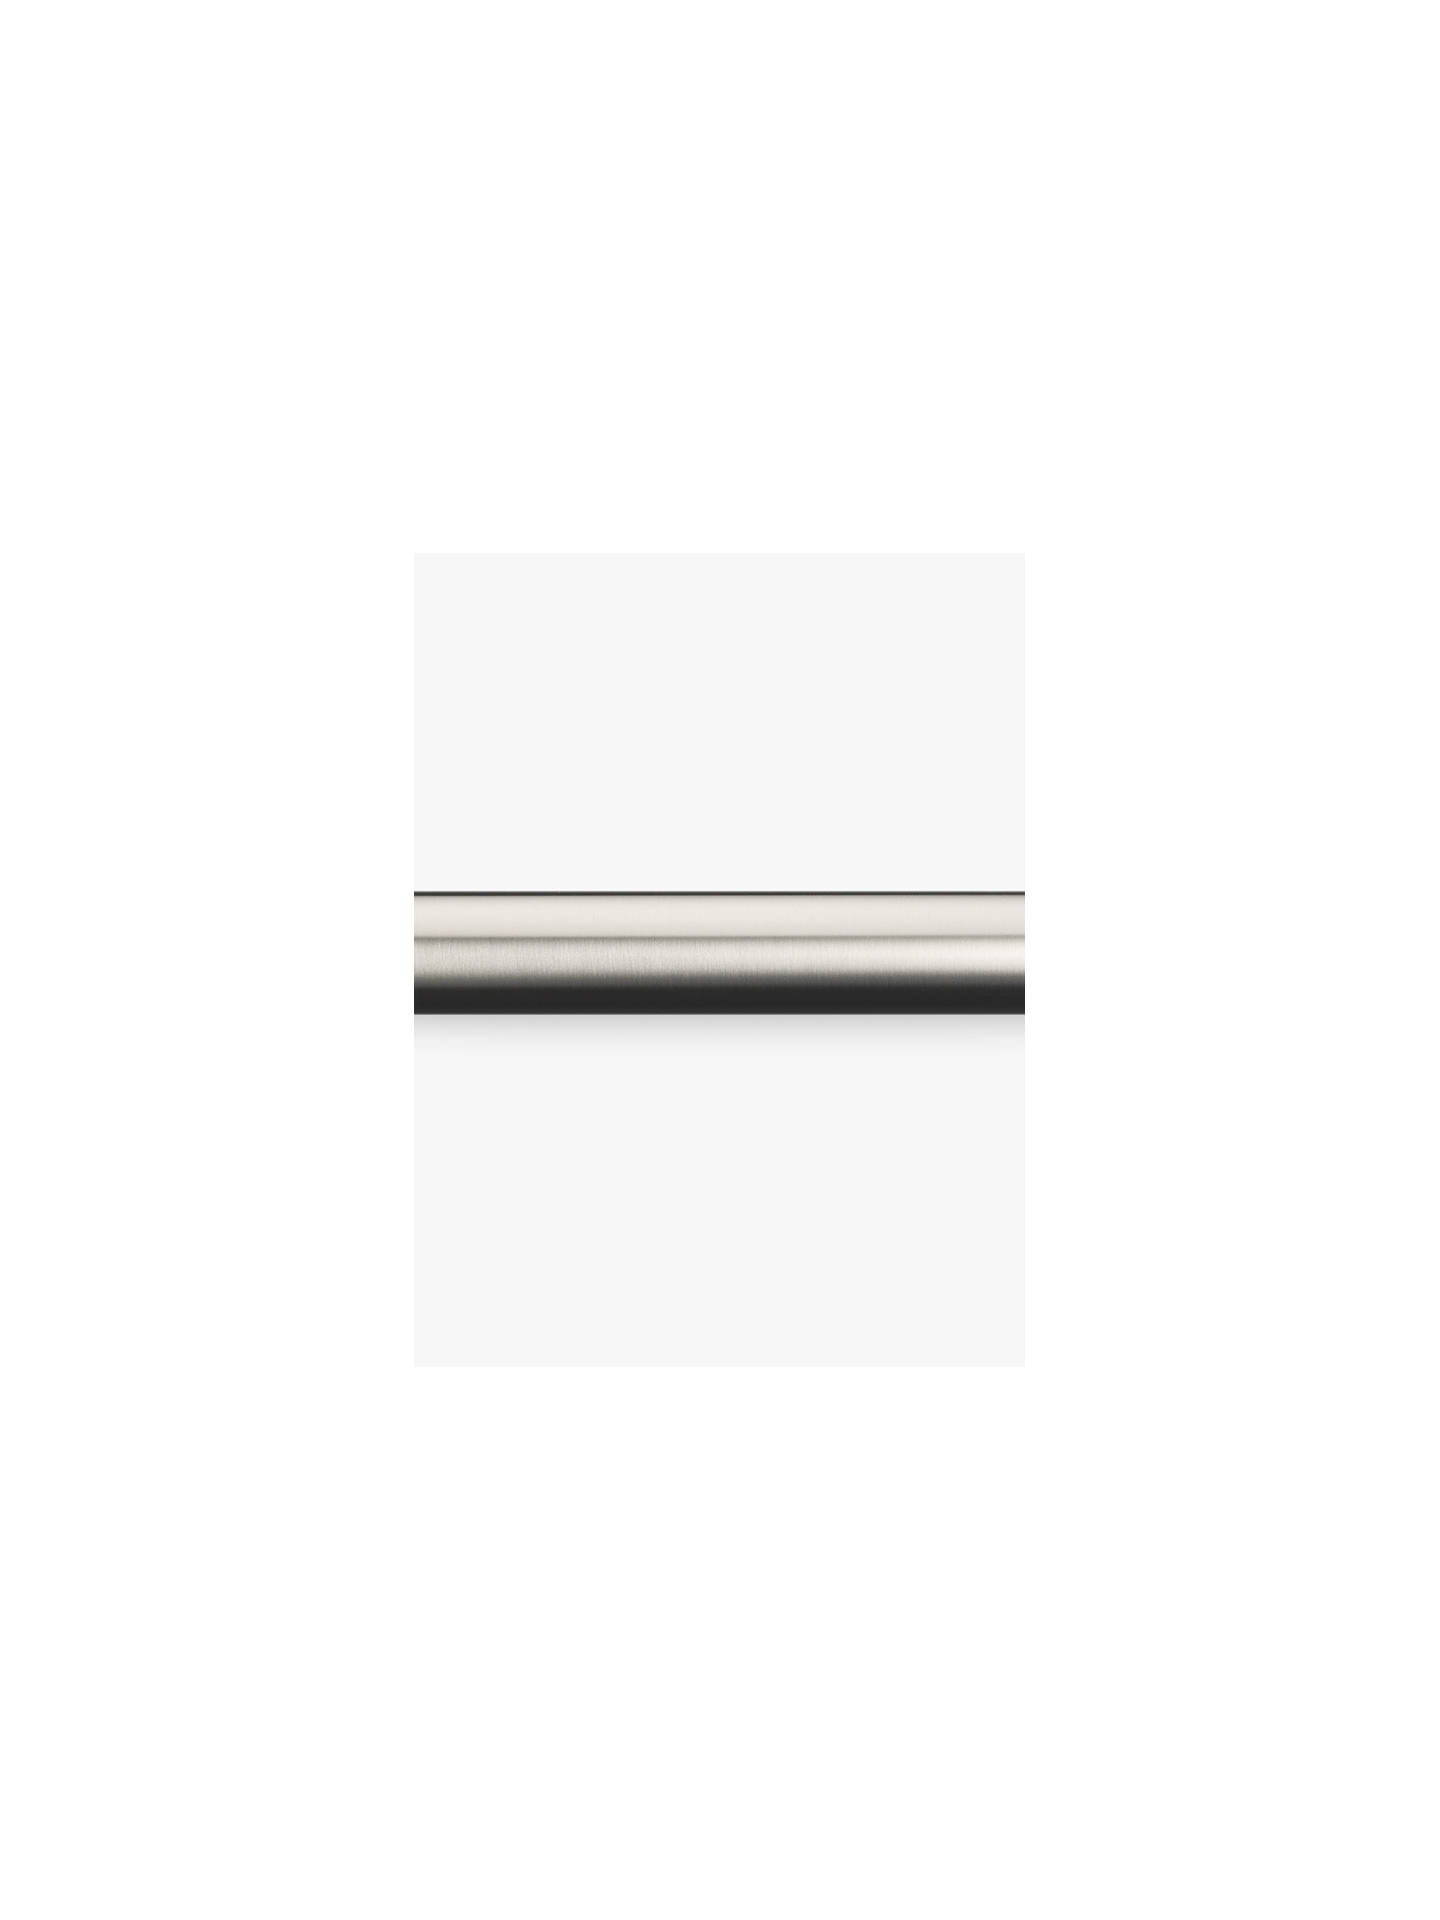 BuyJohn Lewis & Partners Stainless Steel Curtain Pole, L180cm x Dia.30mm Online at johnlewis.com